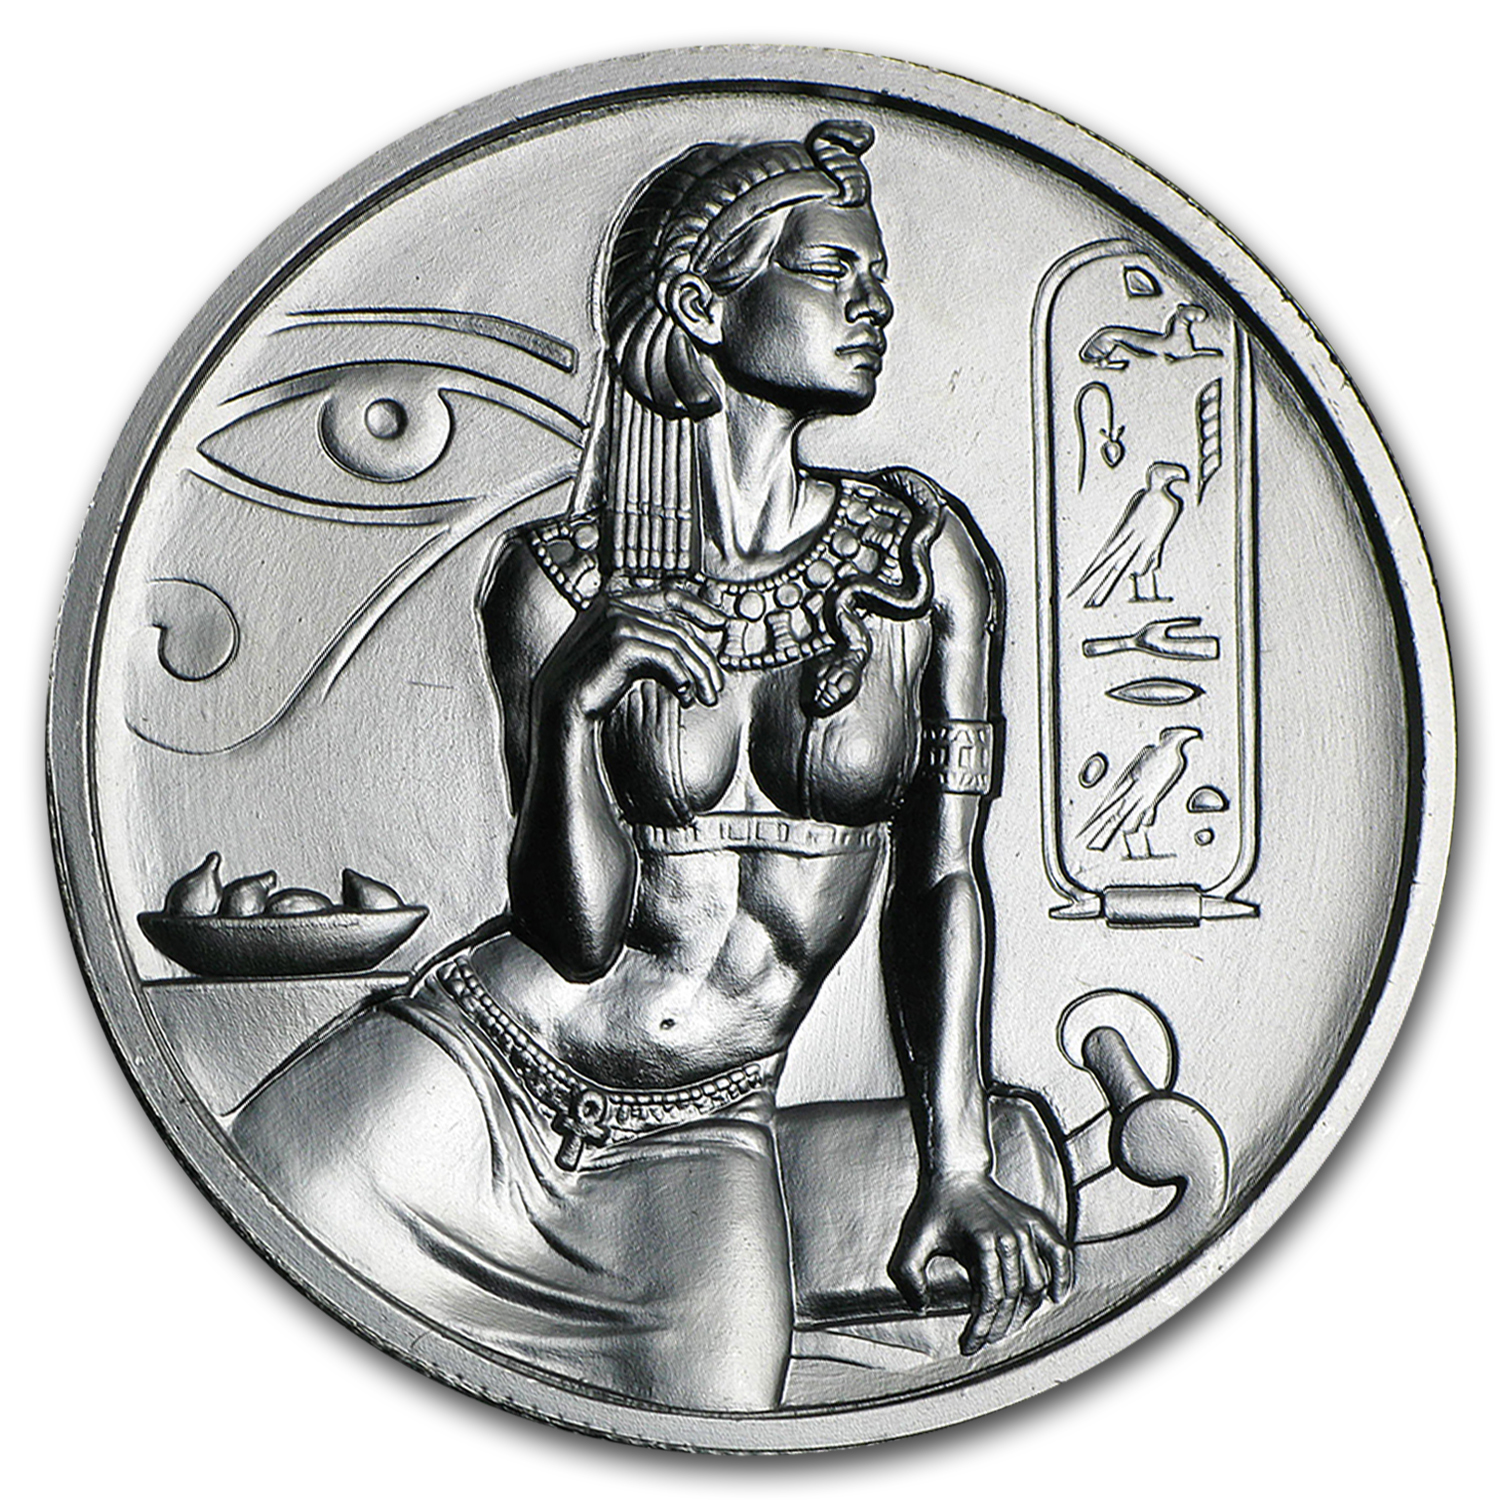 2 oz Silver Round - Cleopatra (Ultra High Relief)